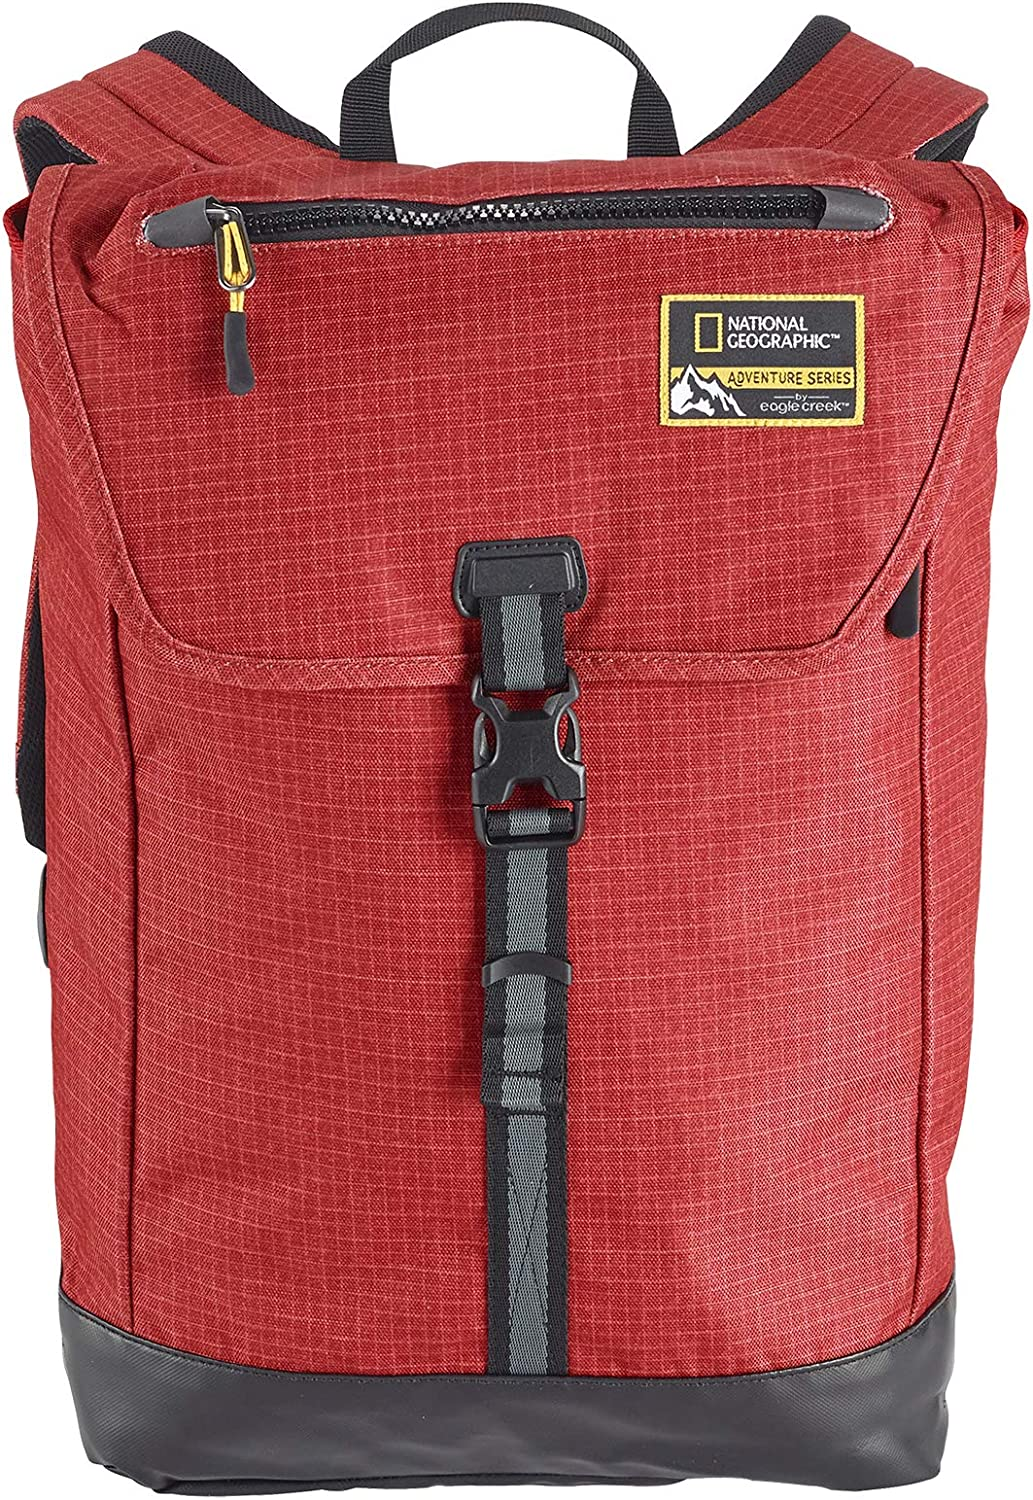 eagle creek unisex-adult National Geographic Adventure Packable Backpack 15l Travel Backpack